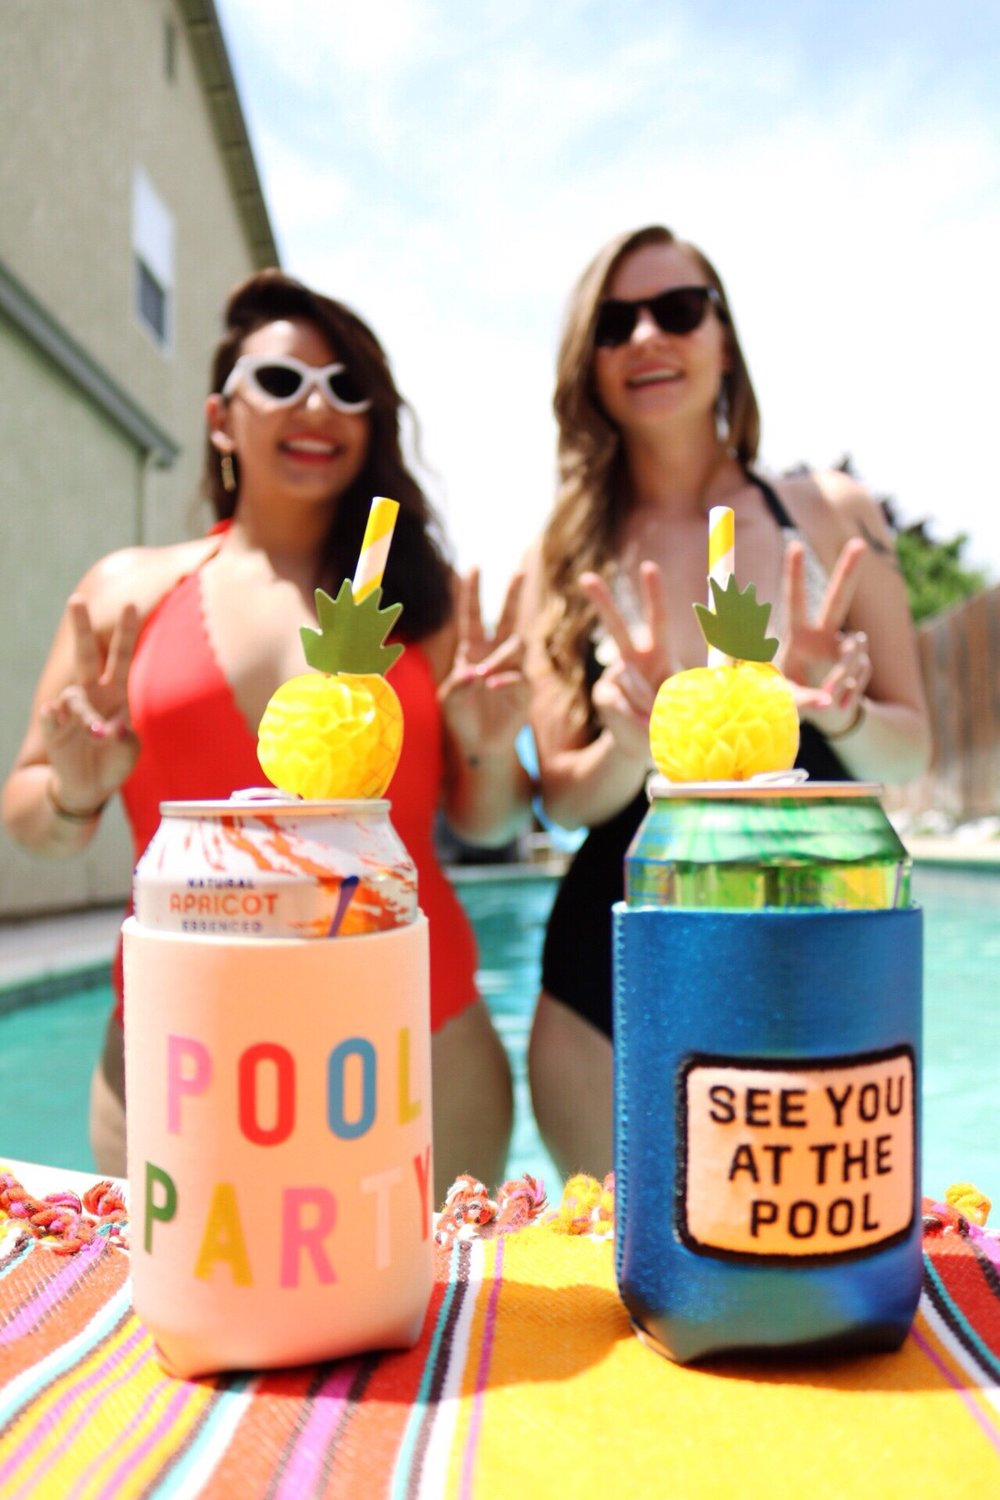 Peace out self-doubt/ Ban.do Pool Party Drink Koozie / Ban.do See You at the pool drink Koozie